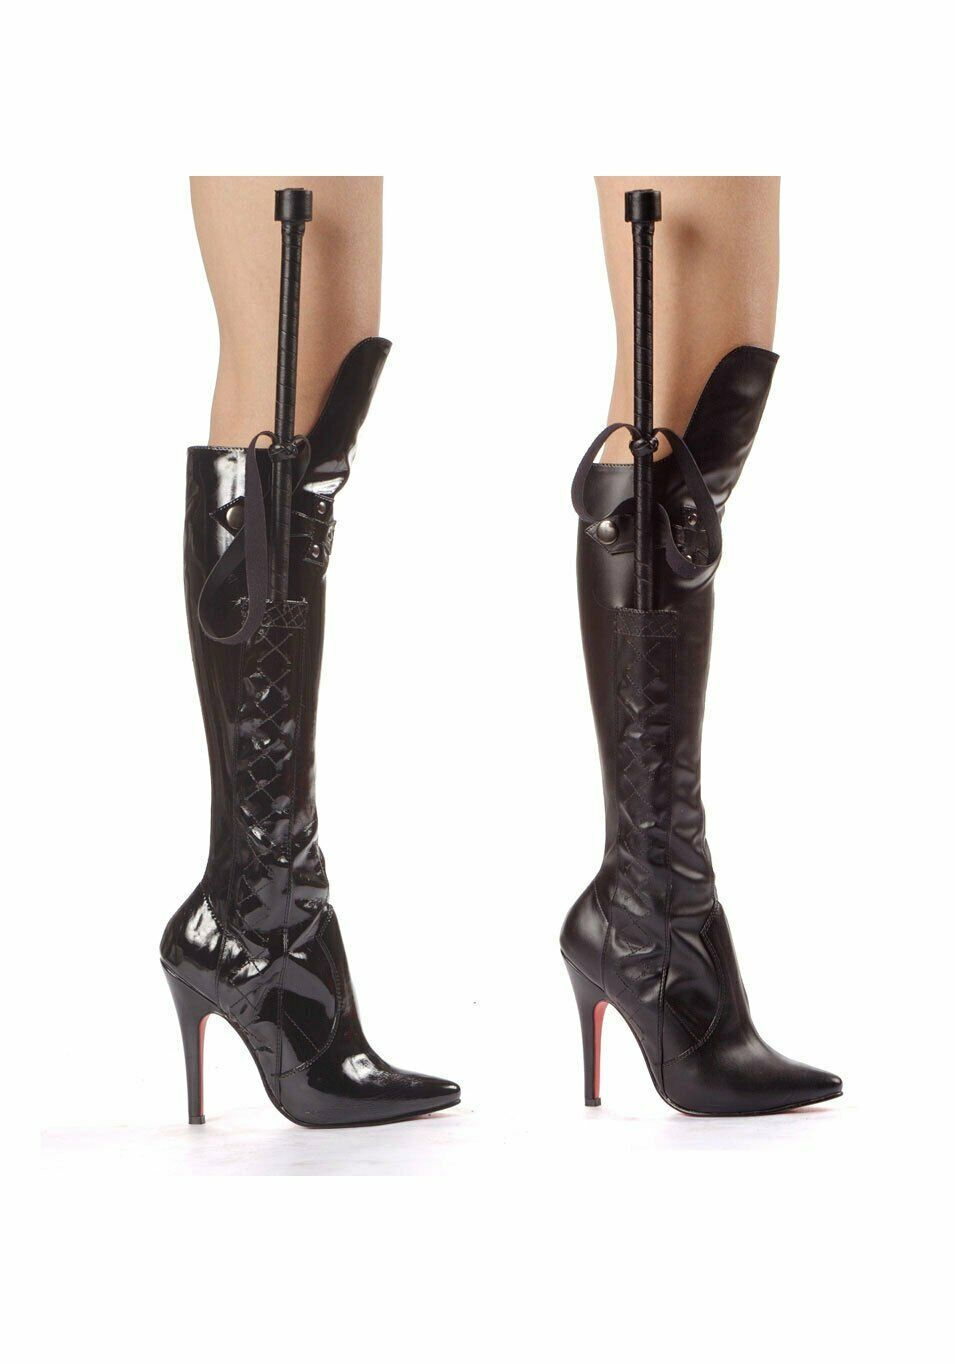 Ellie shoes 511-SADIE Women's 5 Inch Heel Knee Boot With Whip And Knee Guard